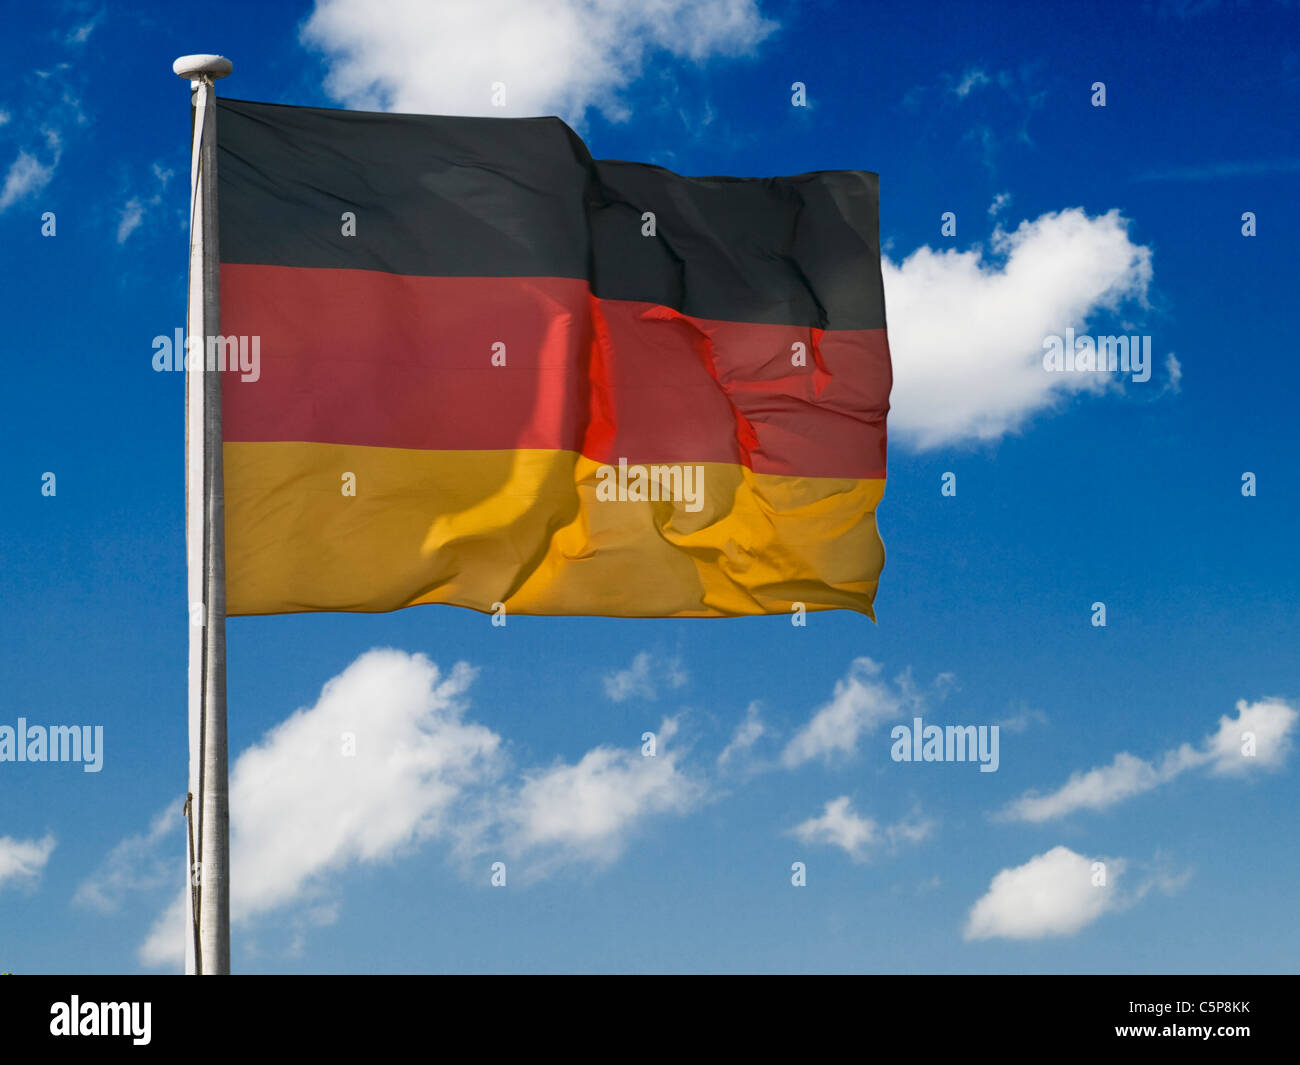 Detailansicht einer Flagge der Bundesrepublik Deutschland | Detail photo of the Flag from the Federal Republic of - Stock Image